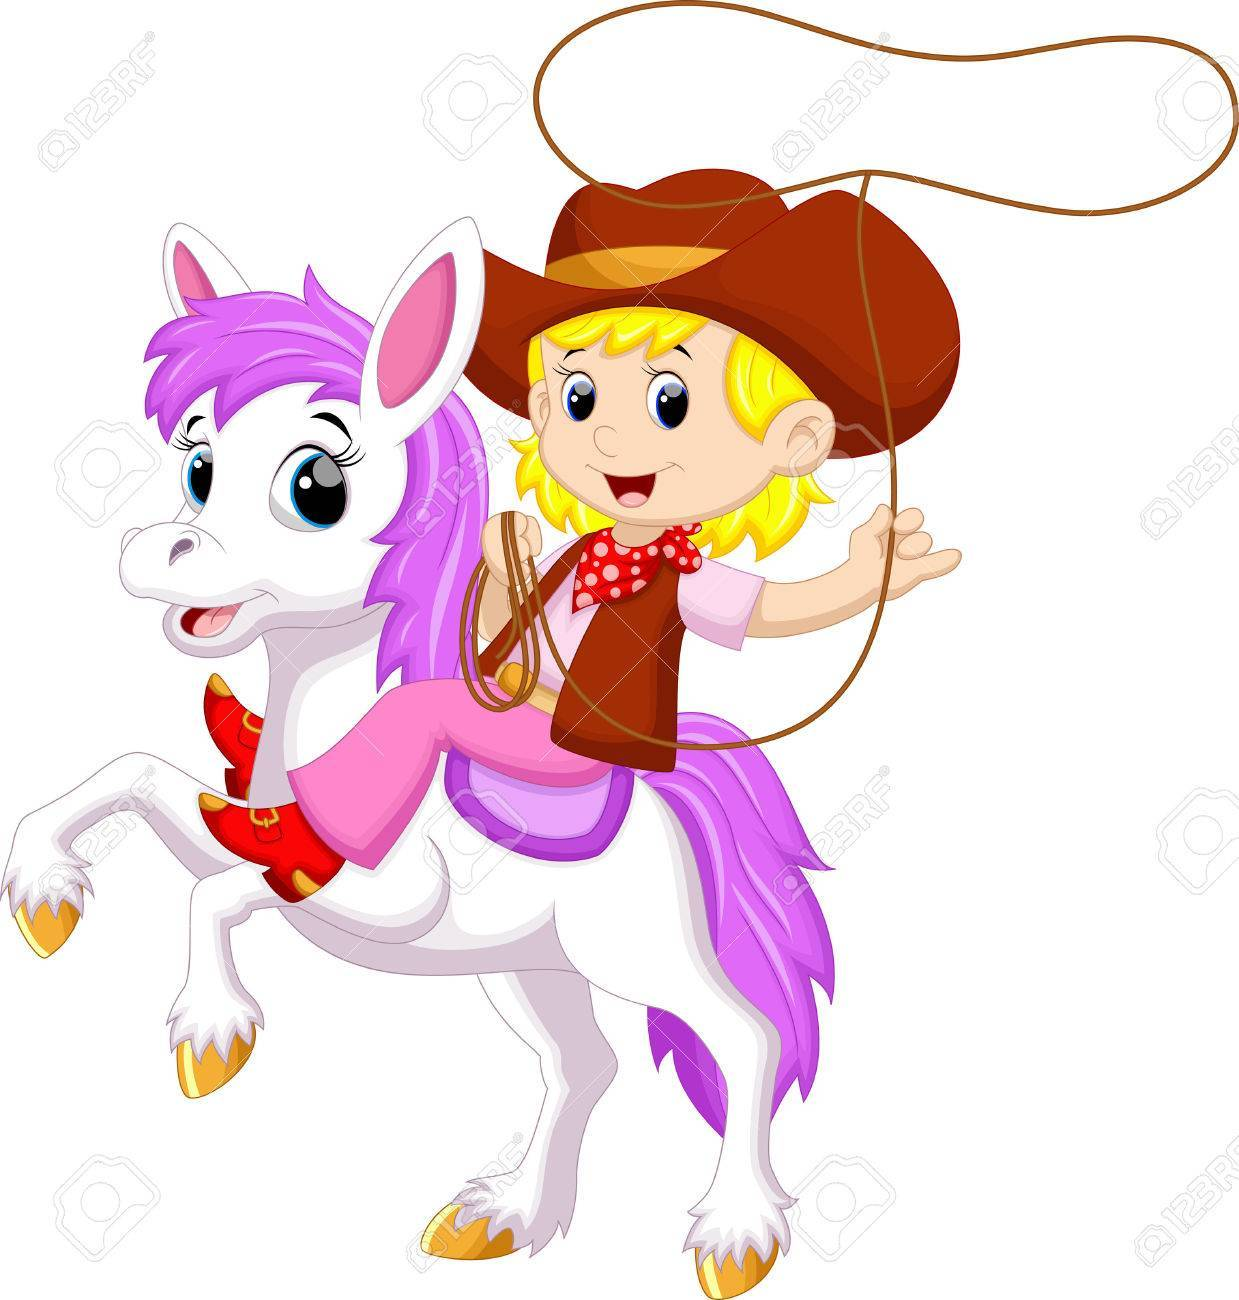 Cowgirl cartoon clipart 3 » Clipart Portal.